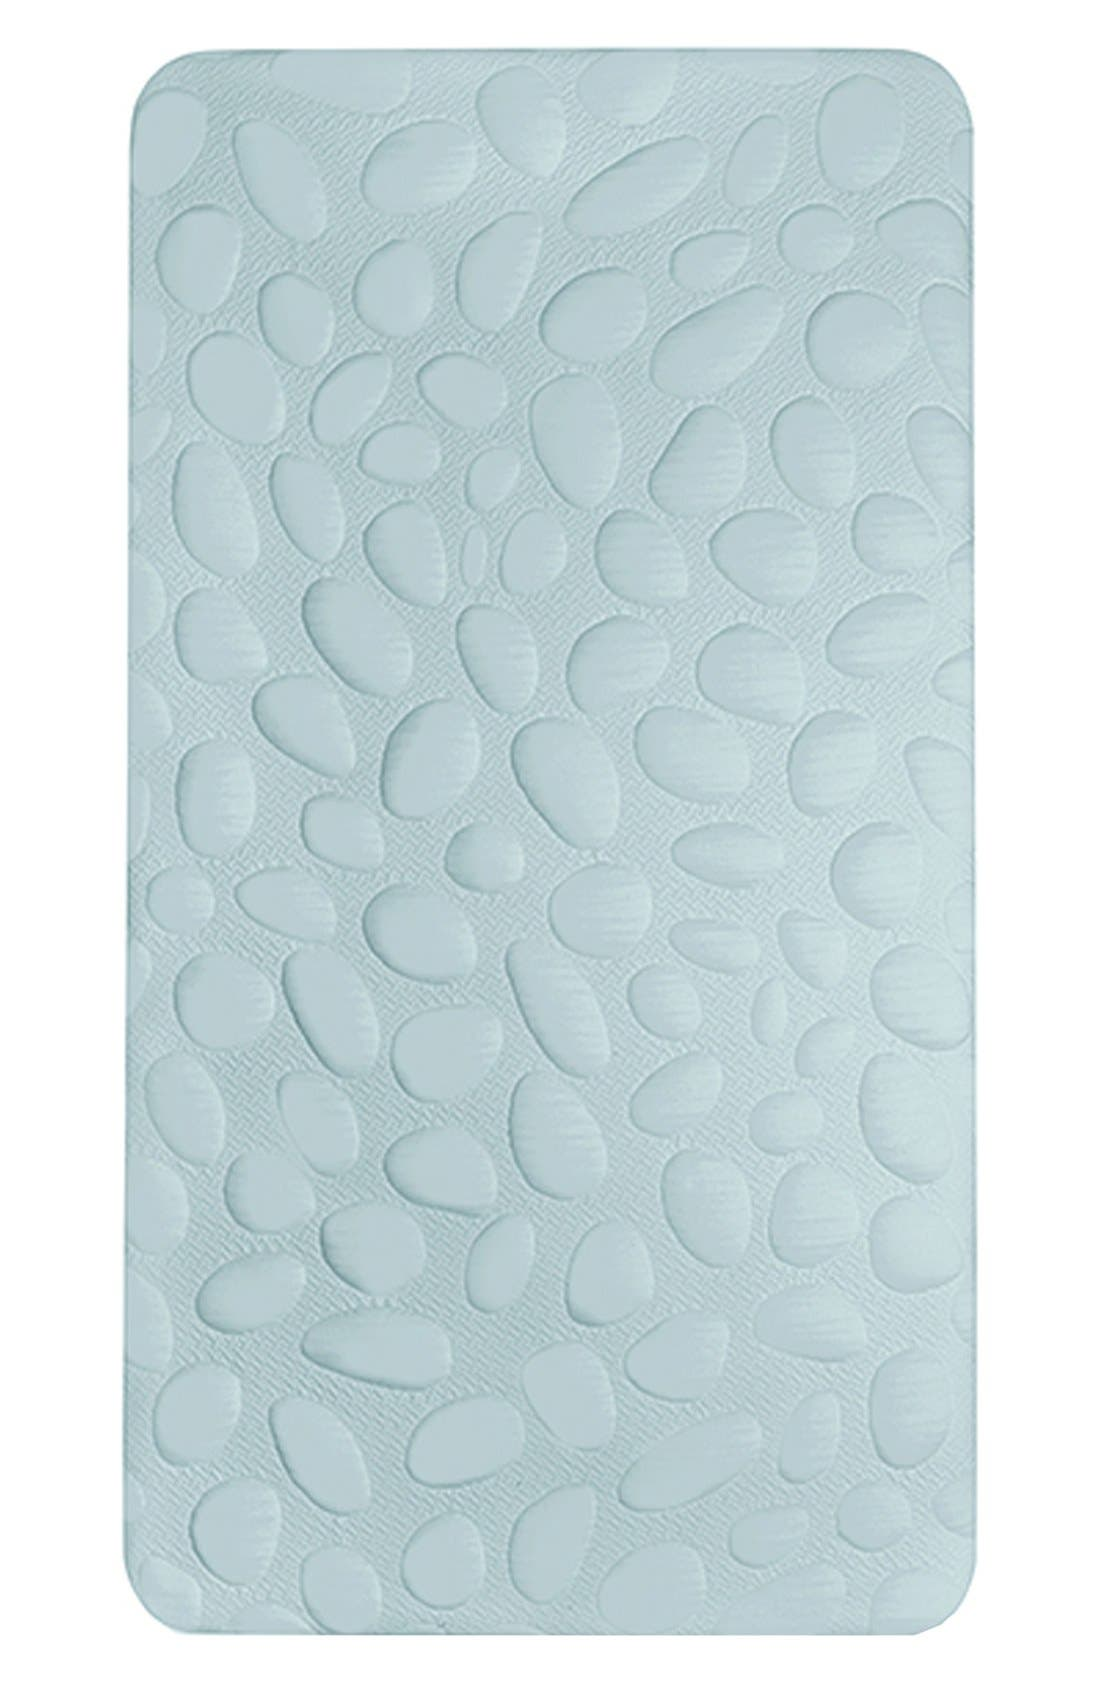 'Pebble Air' Crib Mattress,                         Main,                         color, Sea Glass